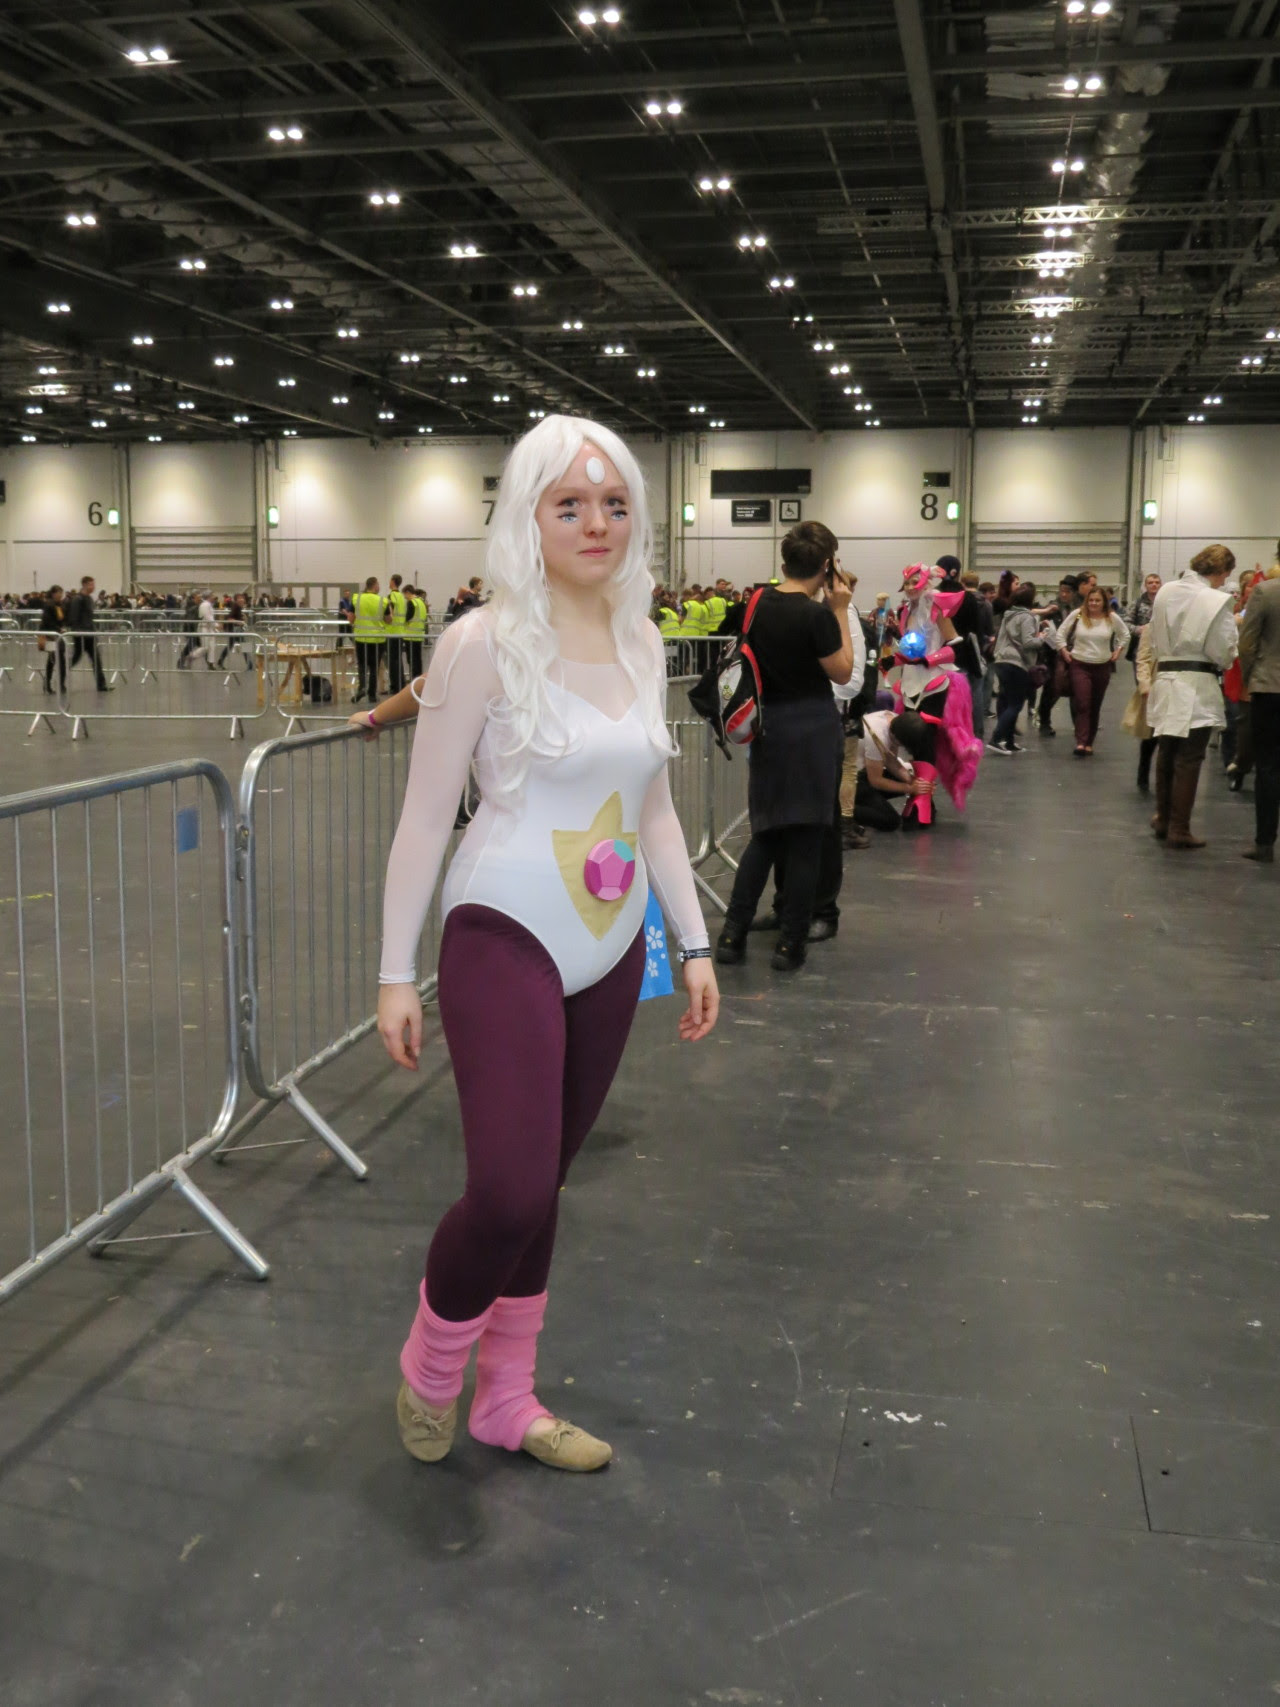 I've now realised that I didn't really get any great pictures of my Rainbow Quartz cosplay on Saturday at MCM but oh well- it was fun and I scared a lot of people with the eyes! (Message me if you're...